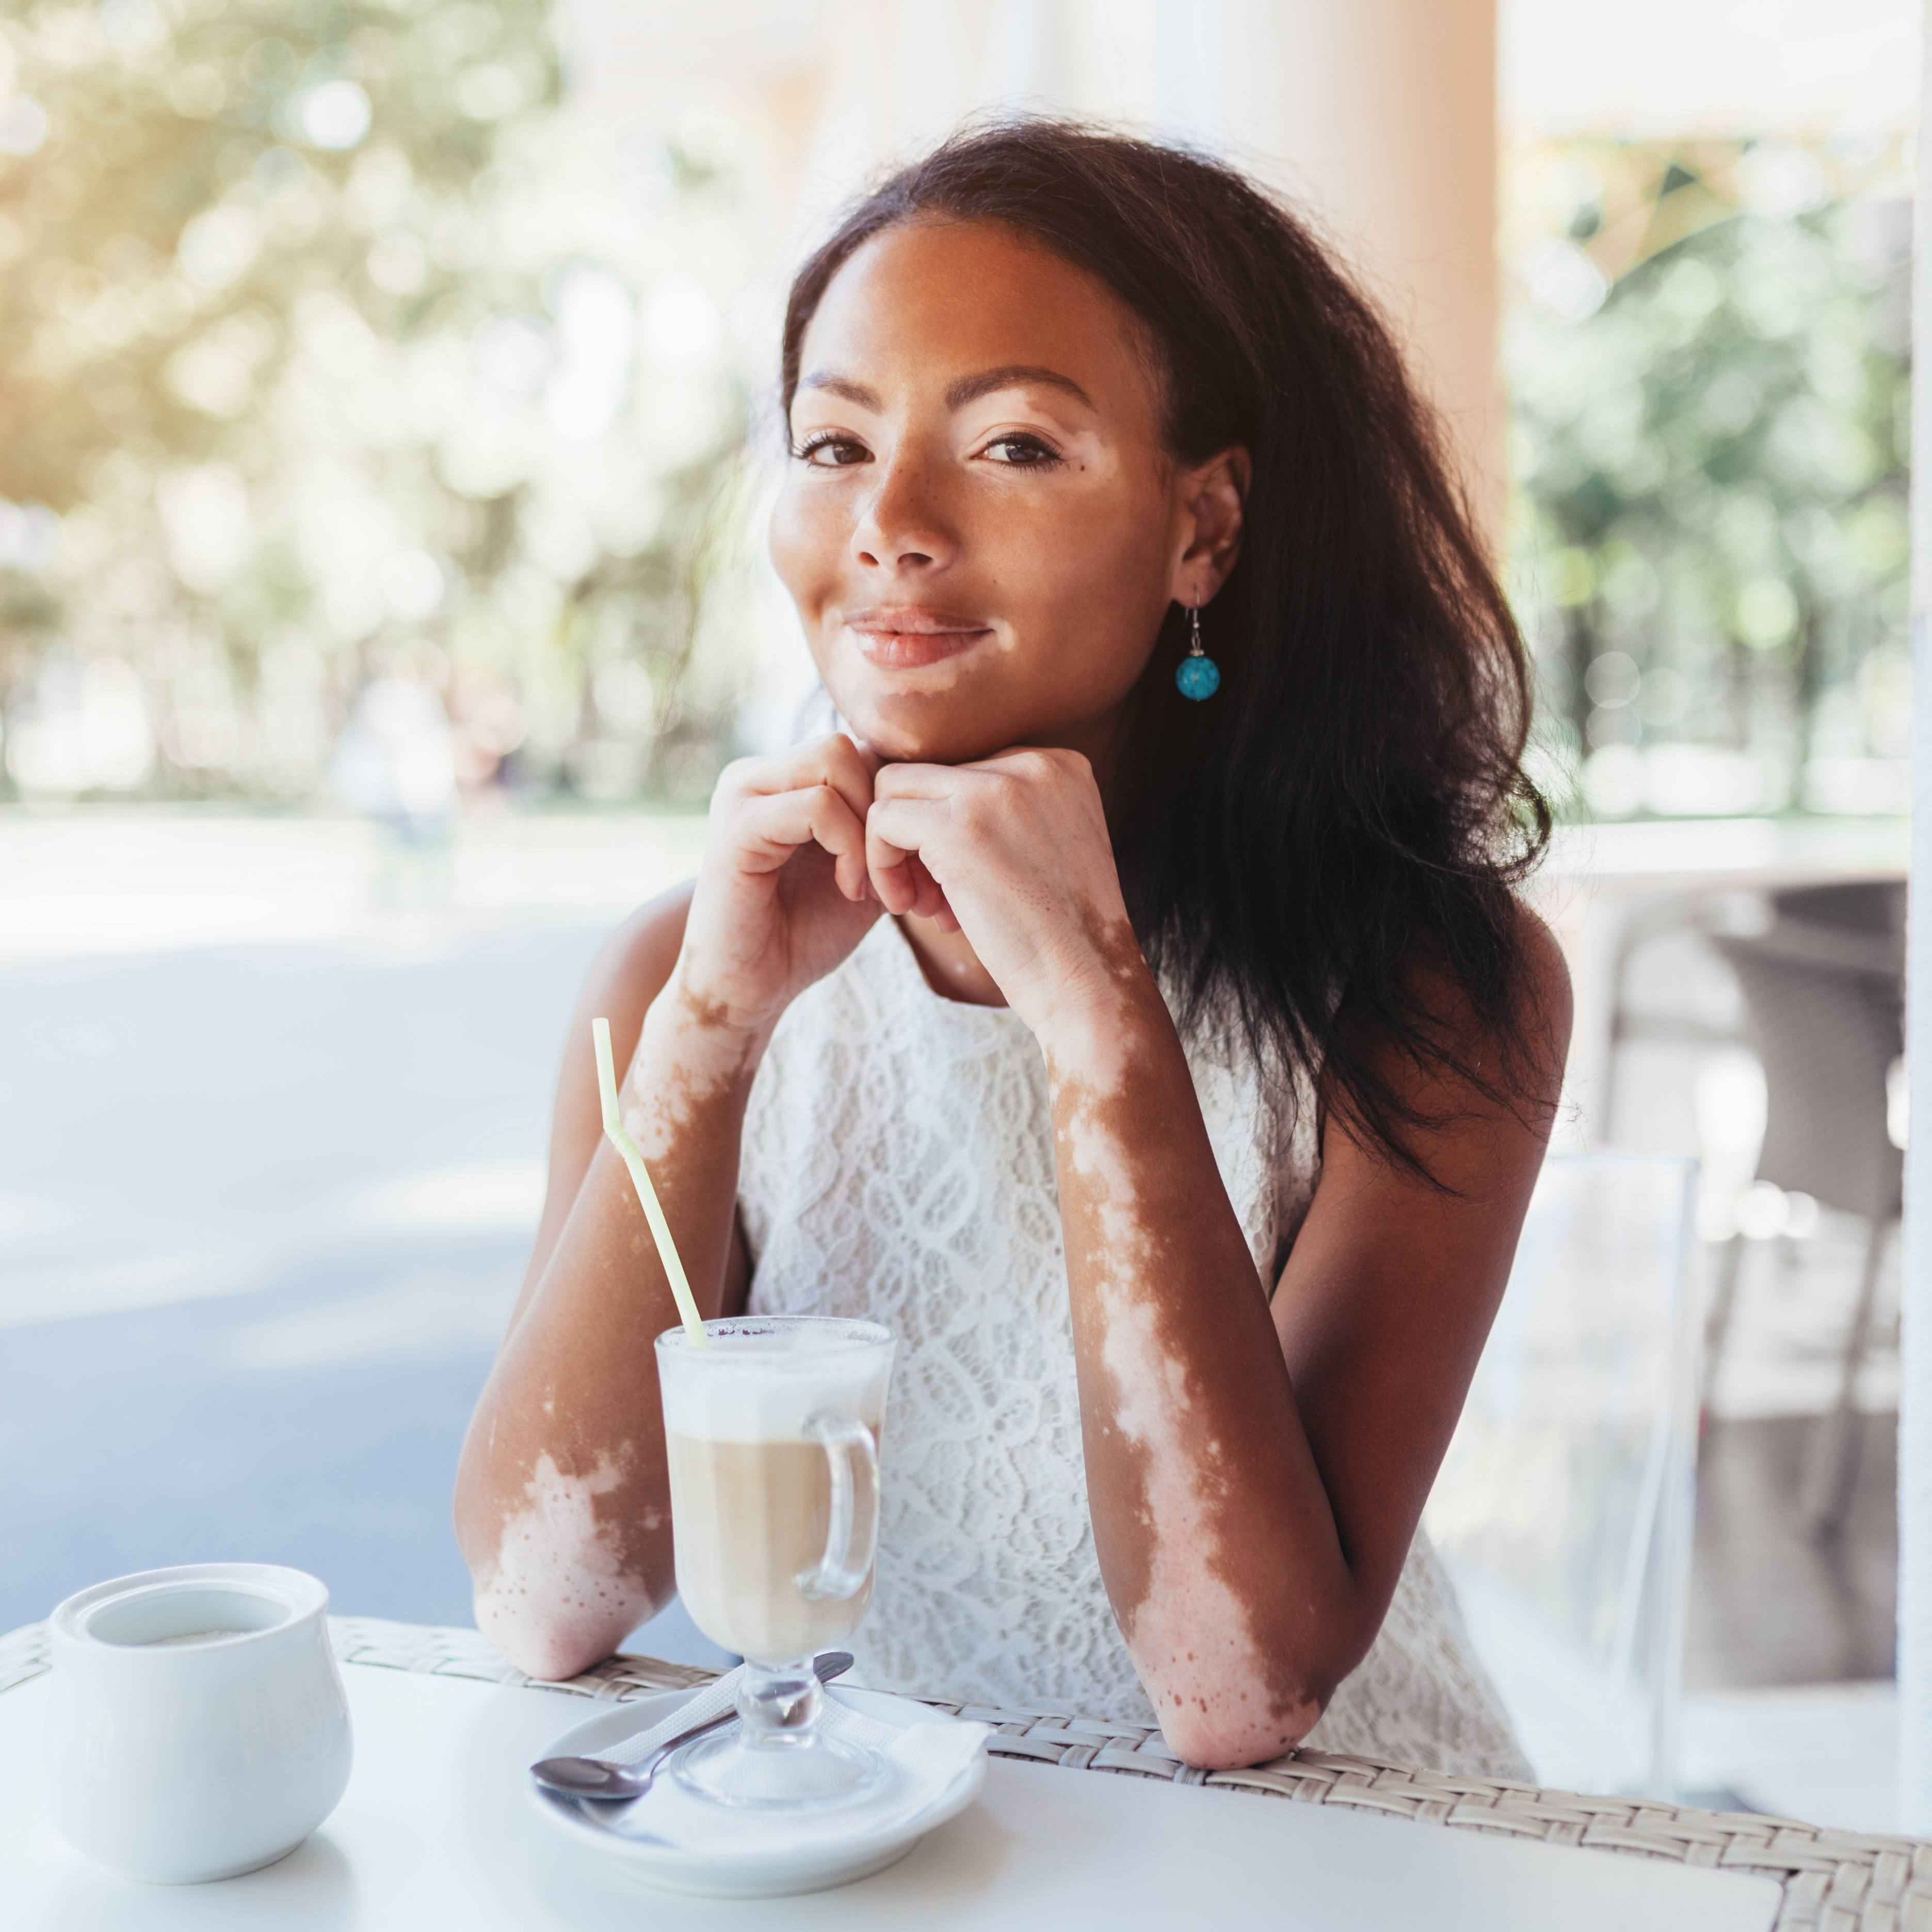 a young woman with vitiligo affecting her face and arms, sitting in an outdoor cafe drinking iced coffee